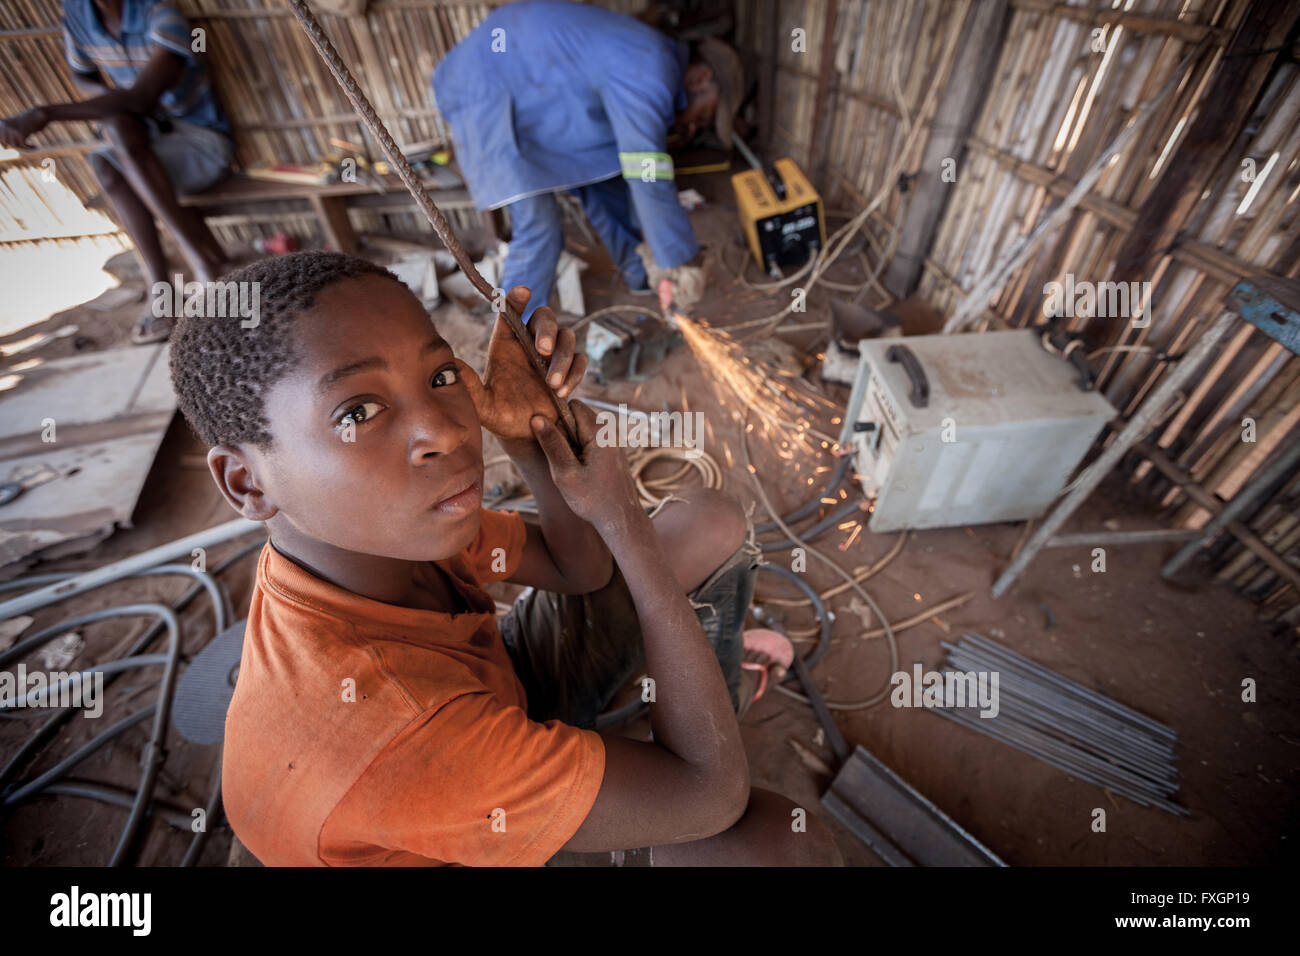 mozambique, a child works in a locksmith bodyshop - Stock Image